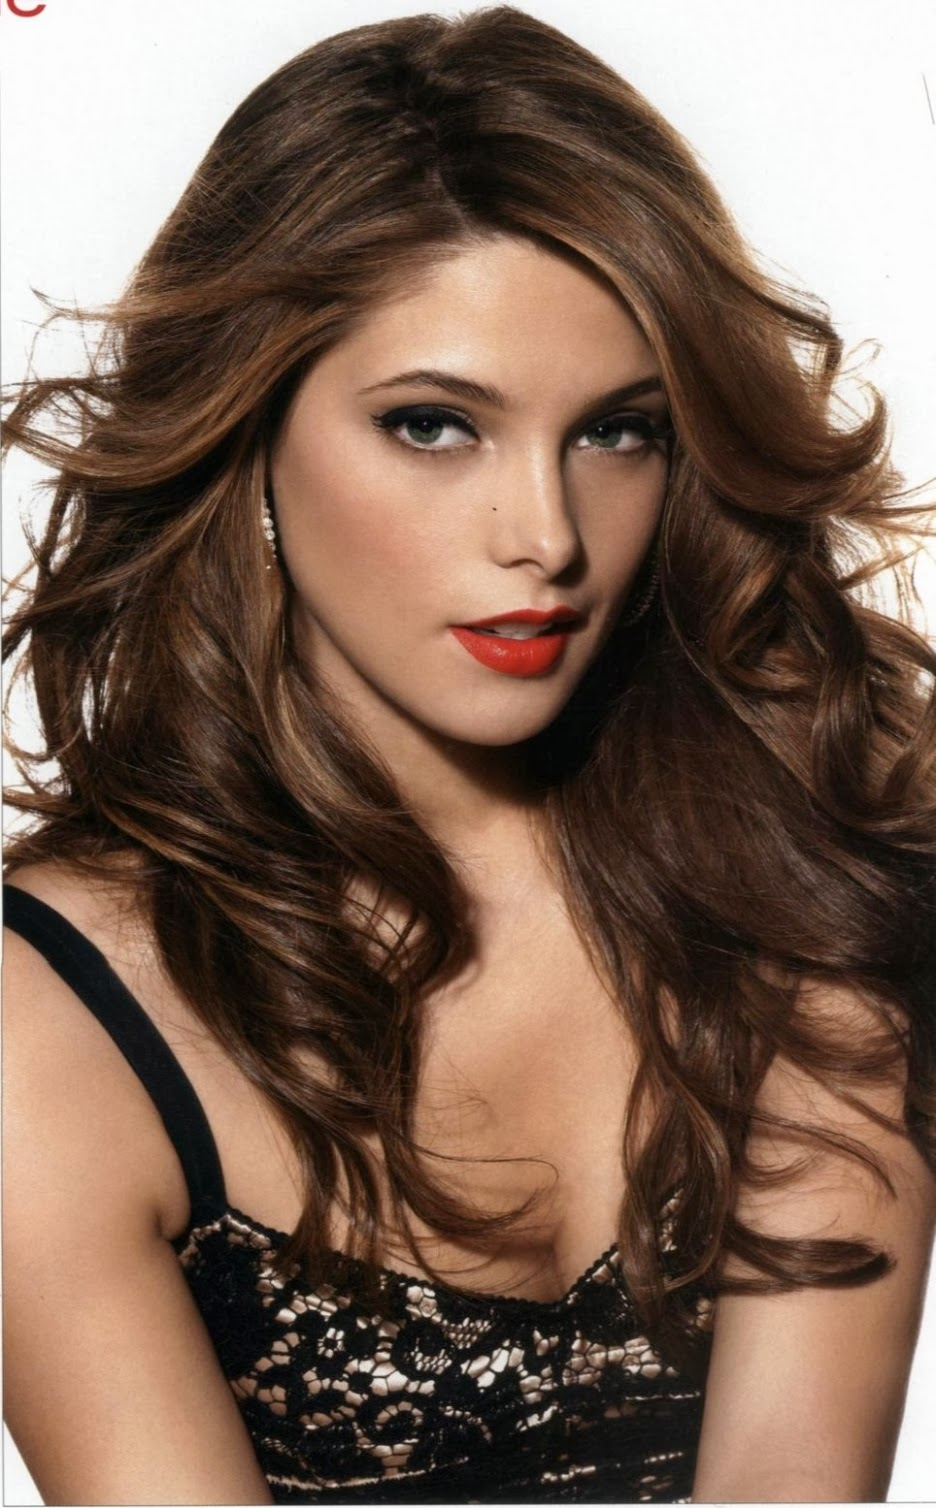 Latest Celebrity Photos Ashley Greene Sexy And Hot Wallpapers